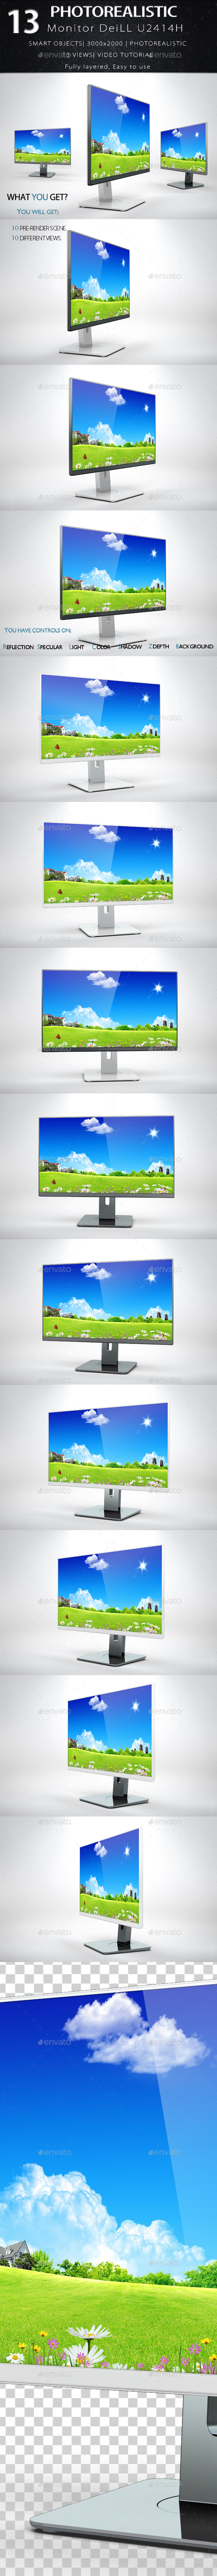 Monitor U2414H Mock Up - Product Mock-Ups Graphics